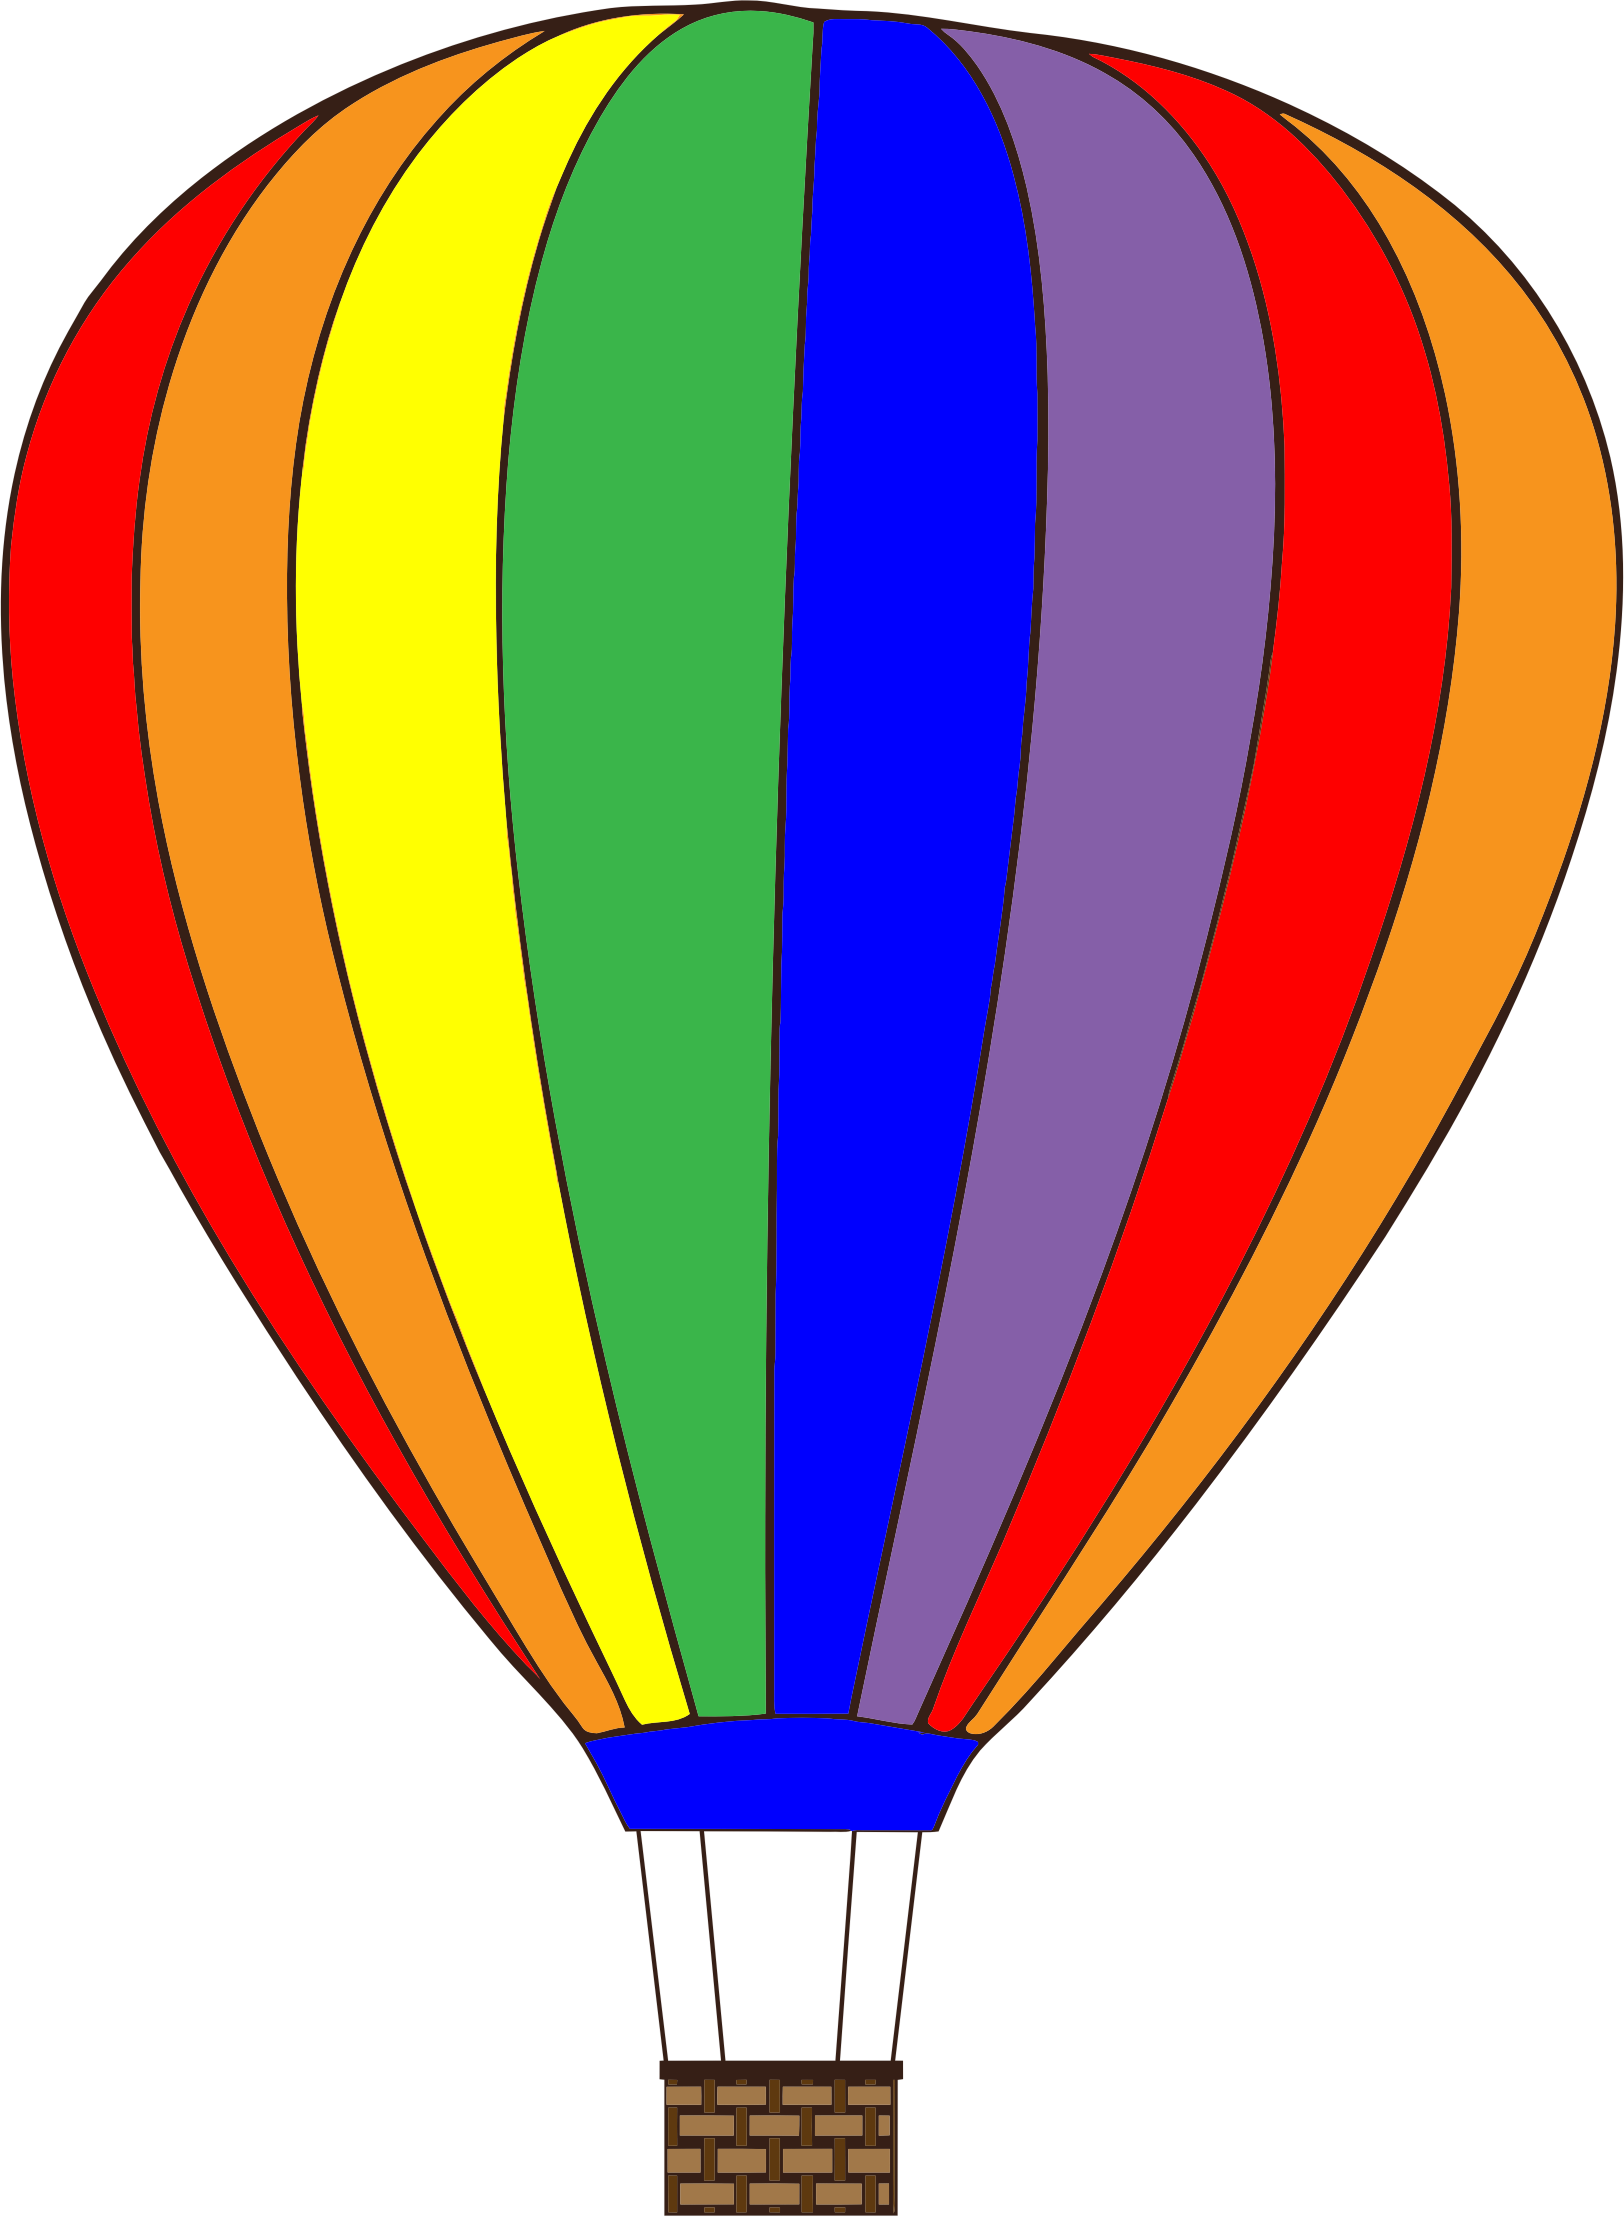 collection of hot. Gas clipart air ballon